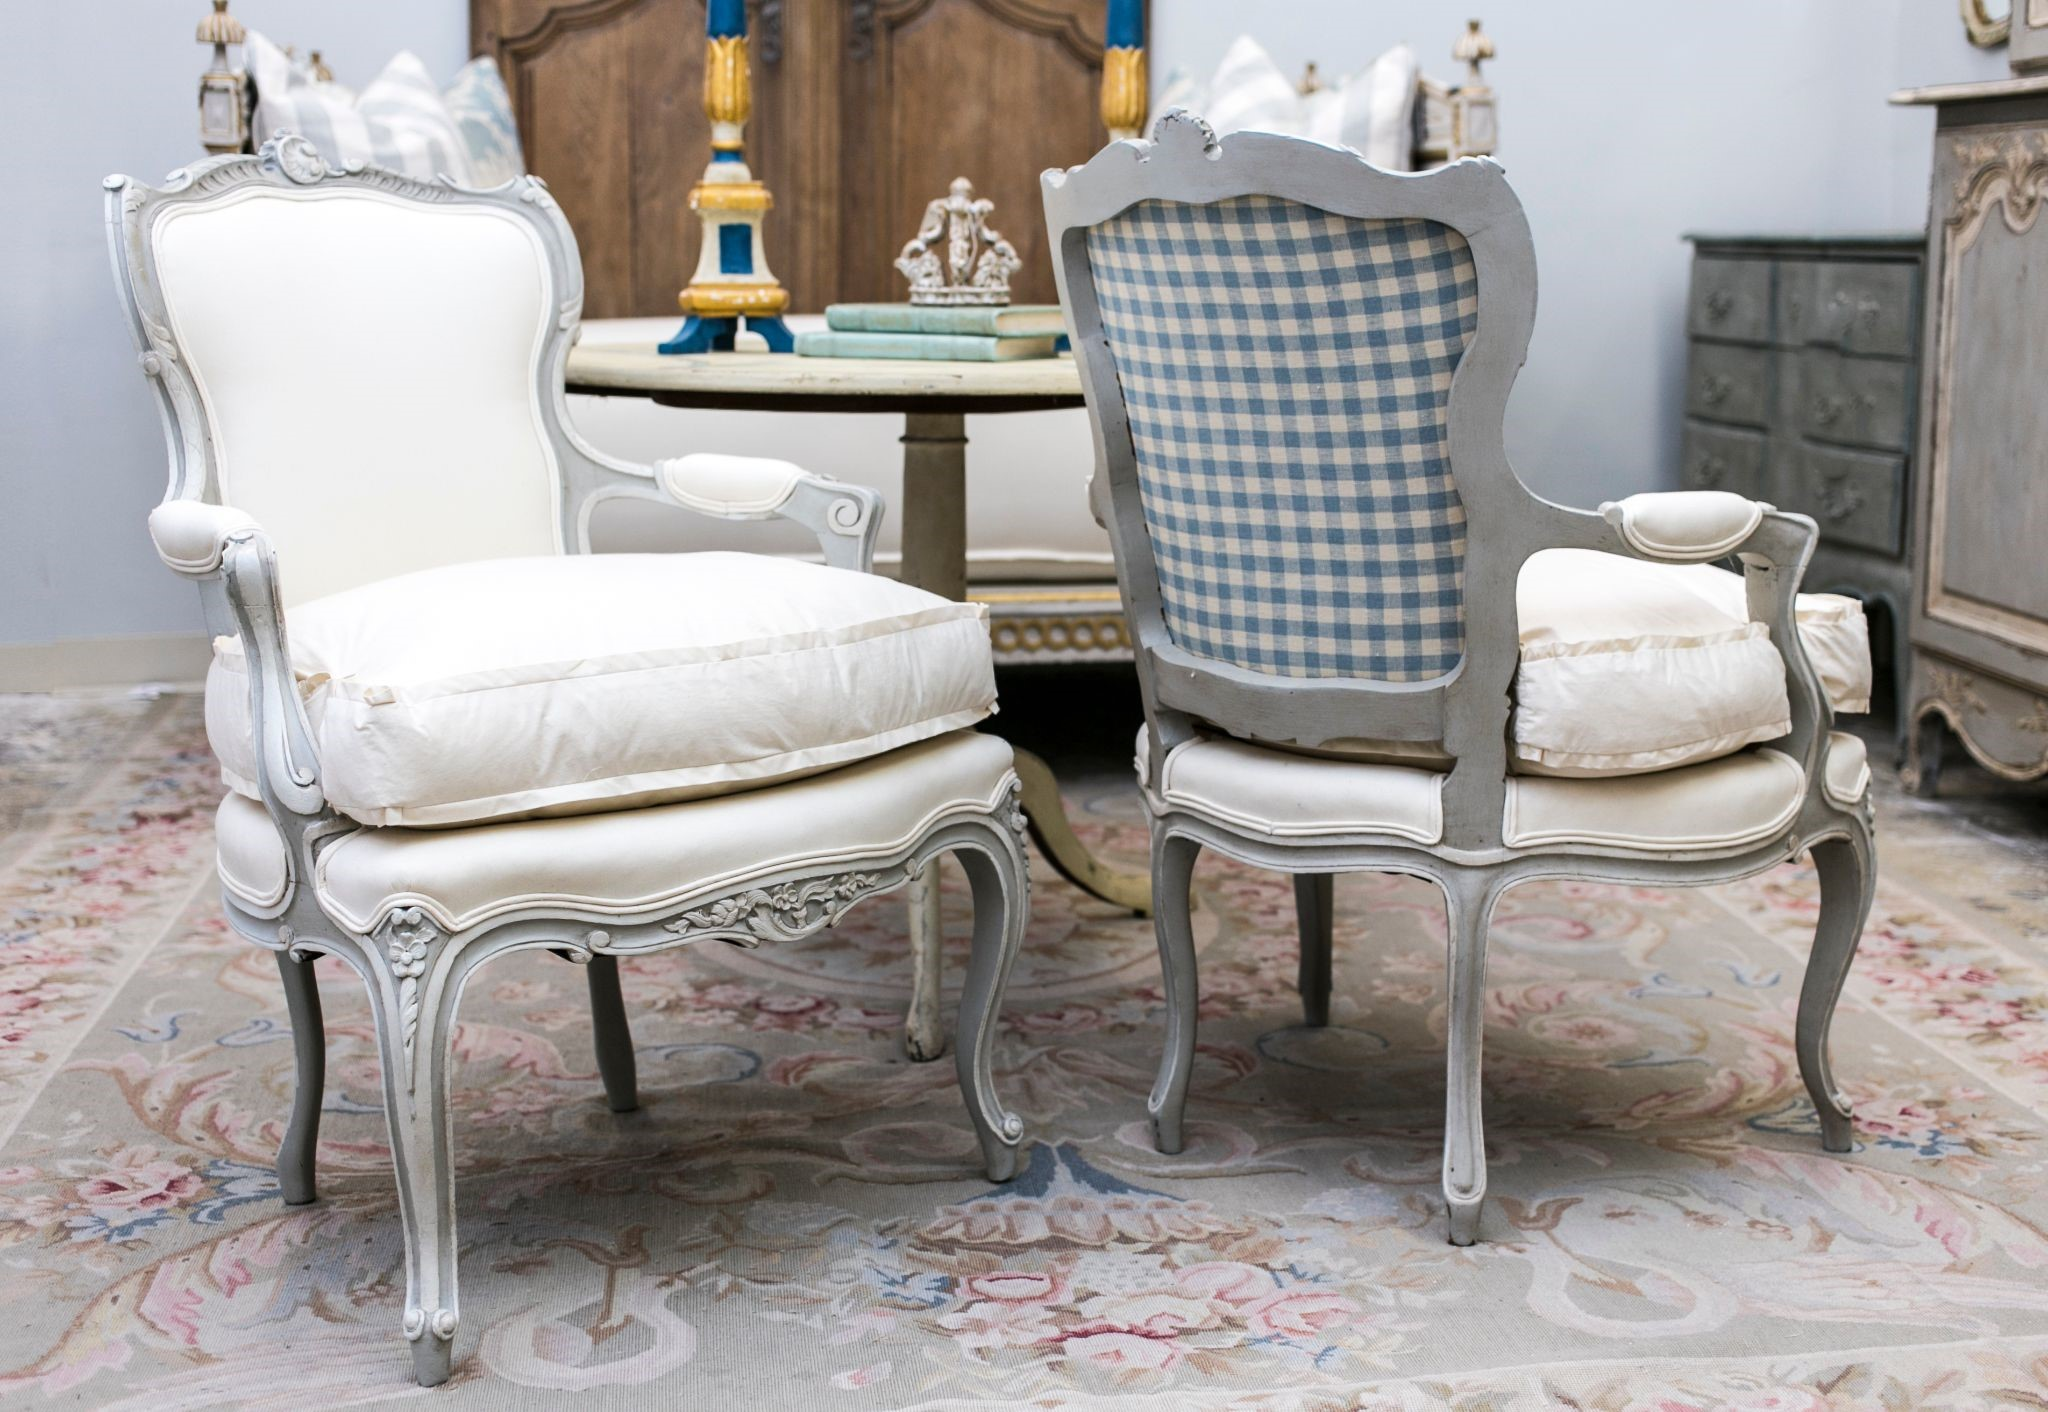 Two French provincial chalk painted, upholstered chairs in a farmhouse inspired home.